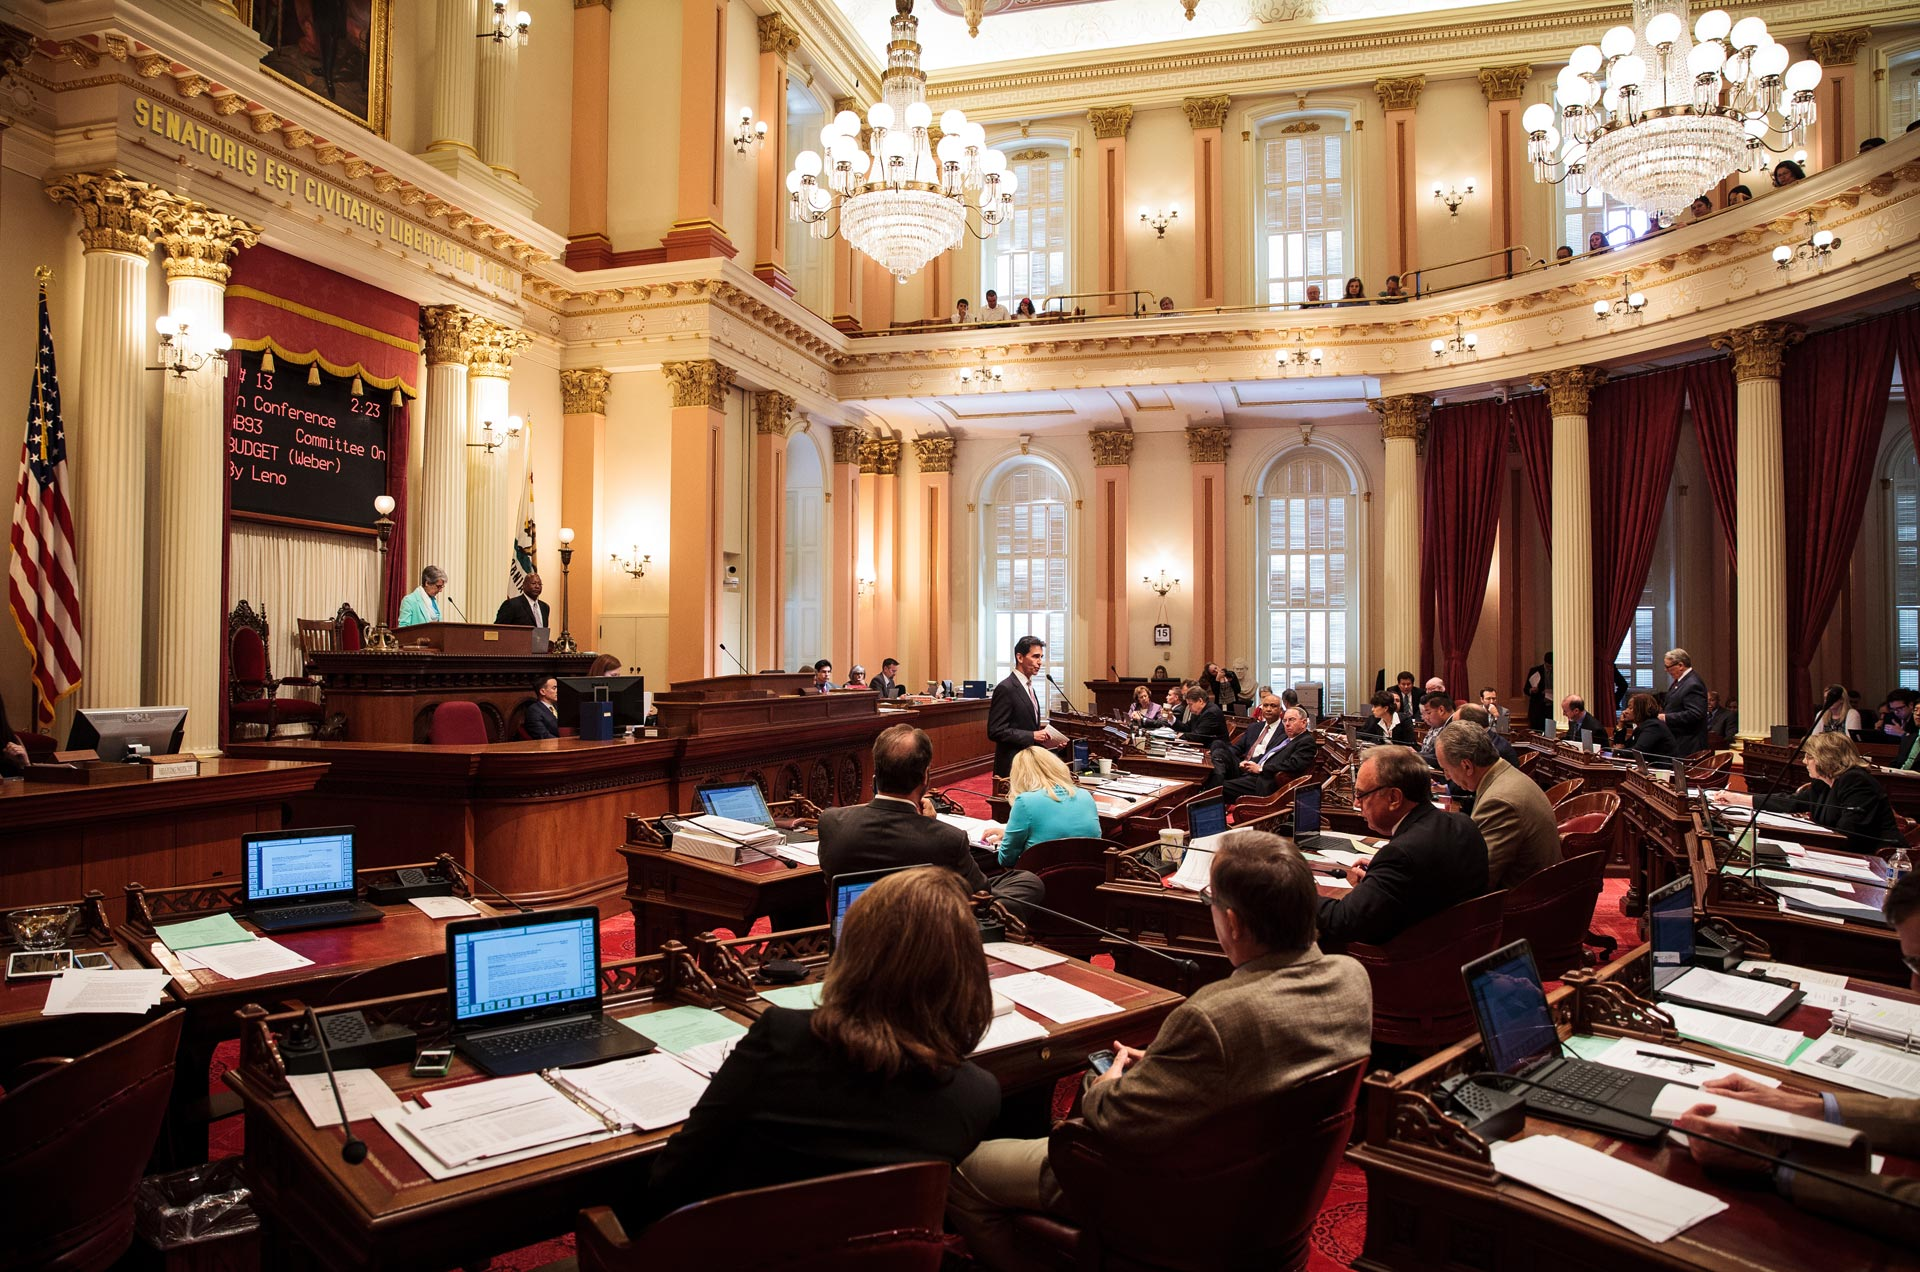 State senators meet in the California Senate chambers in Sacramento.